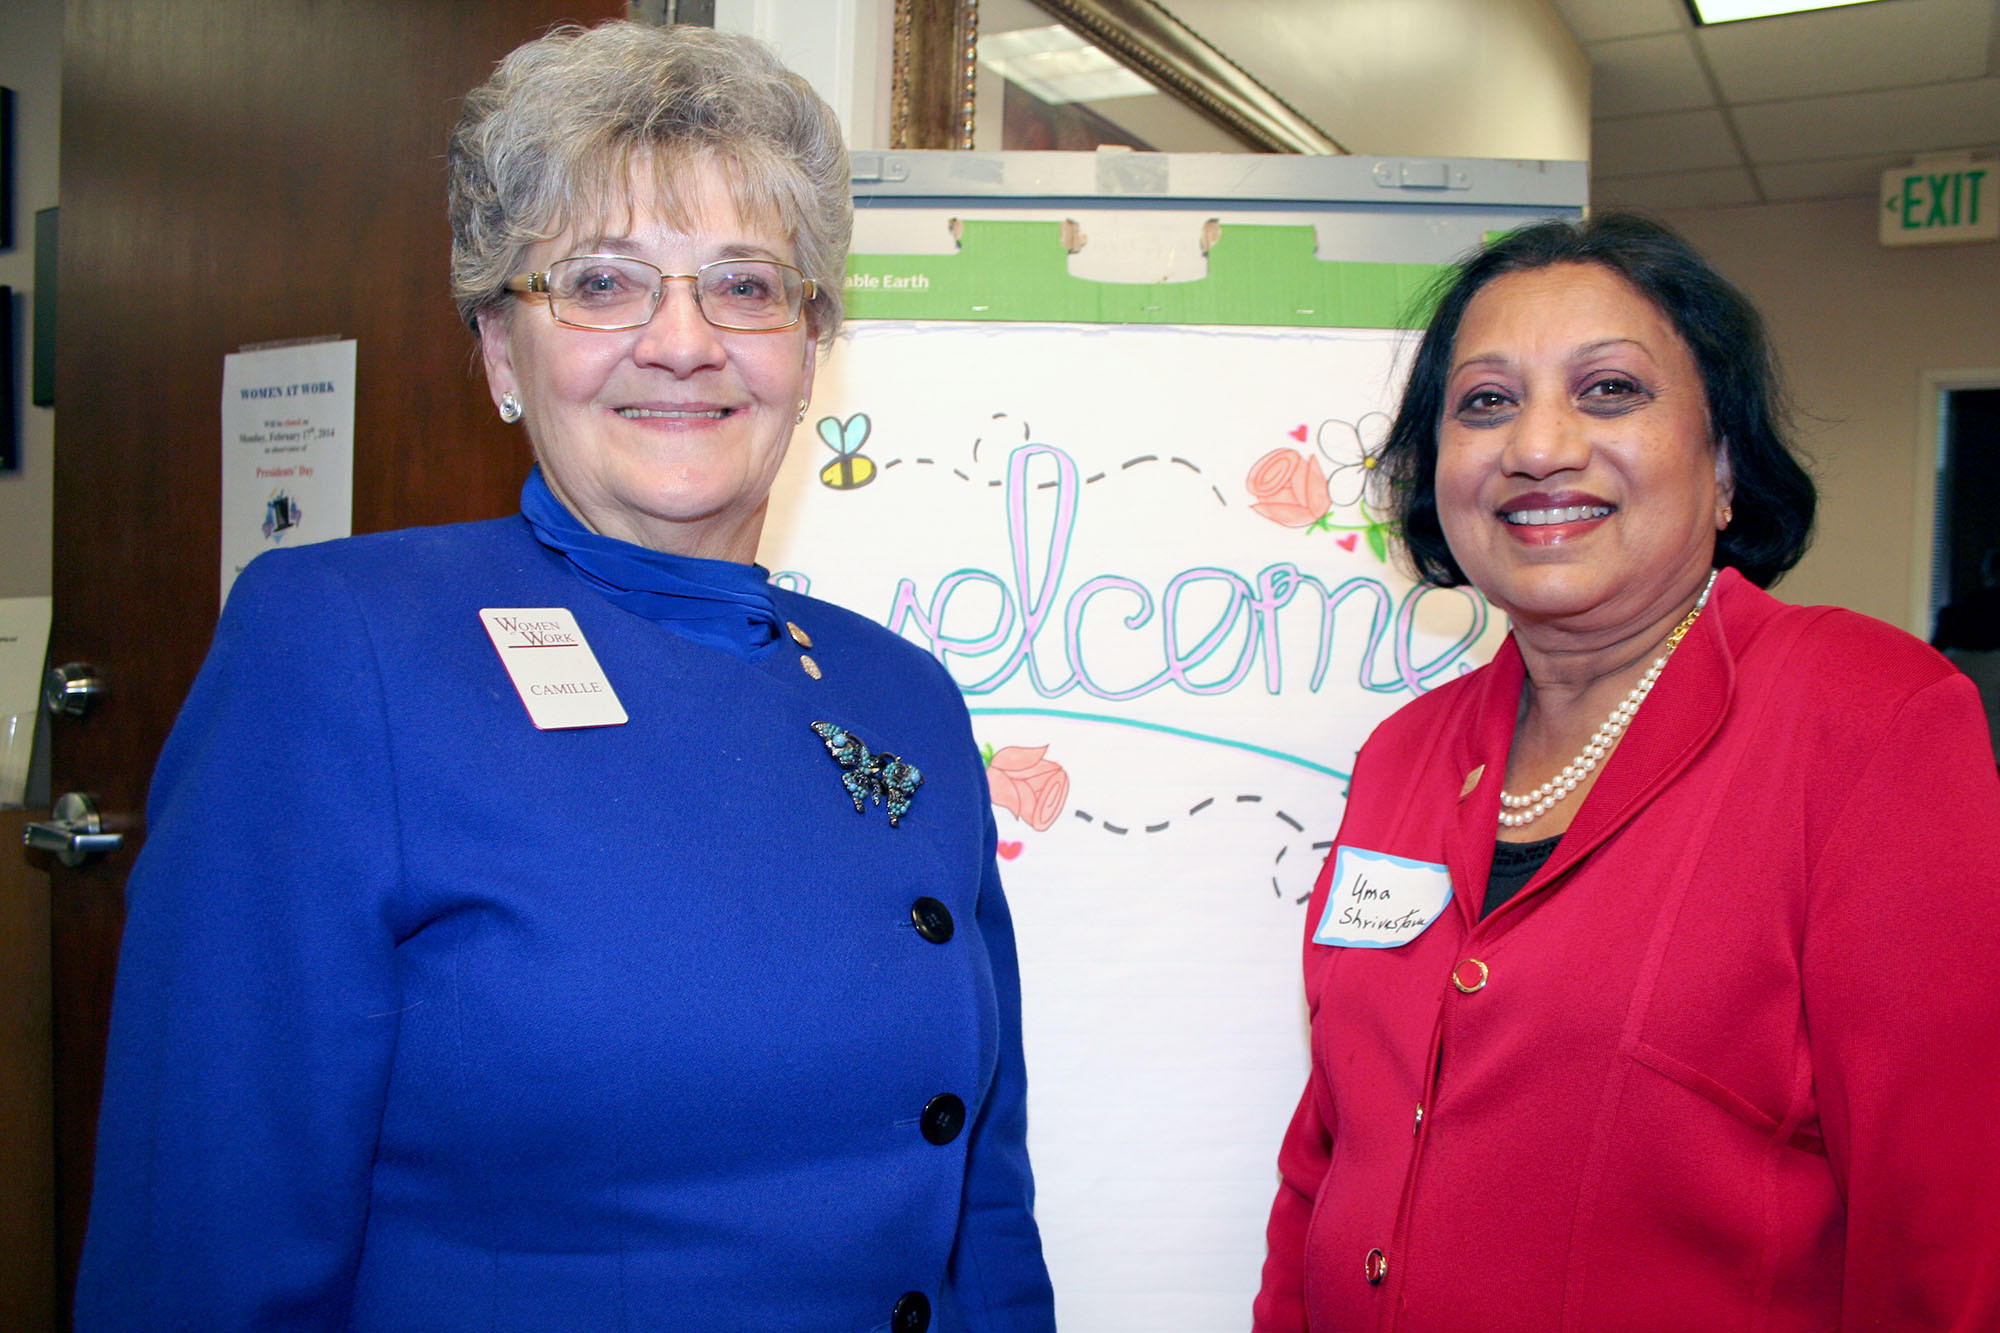 Welcoming supporters to a reception are, from left, new Women at Work Executive Director Camille Levee and Board President Uma Shrivastava.